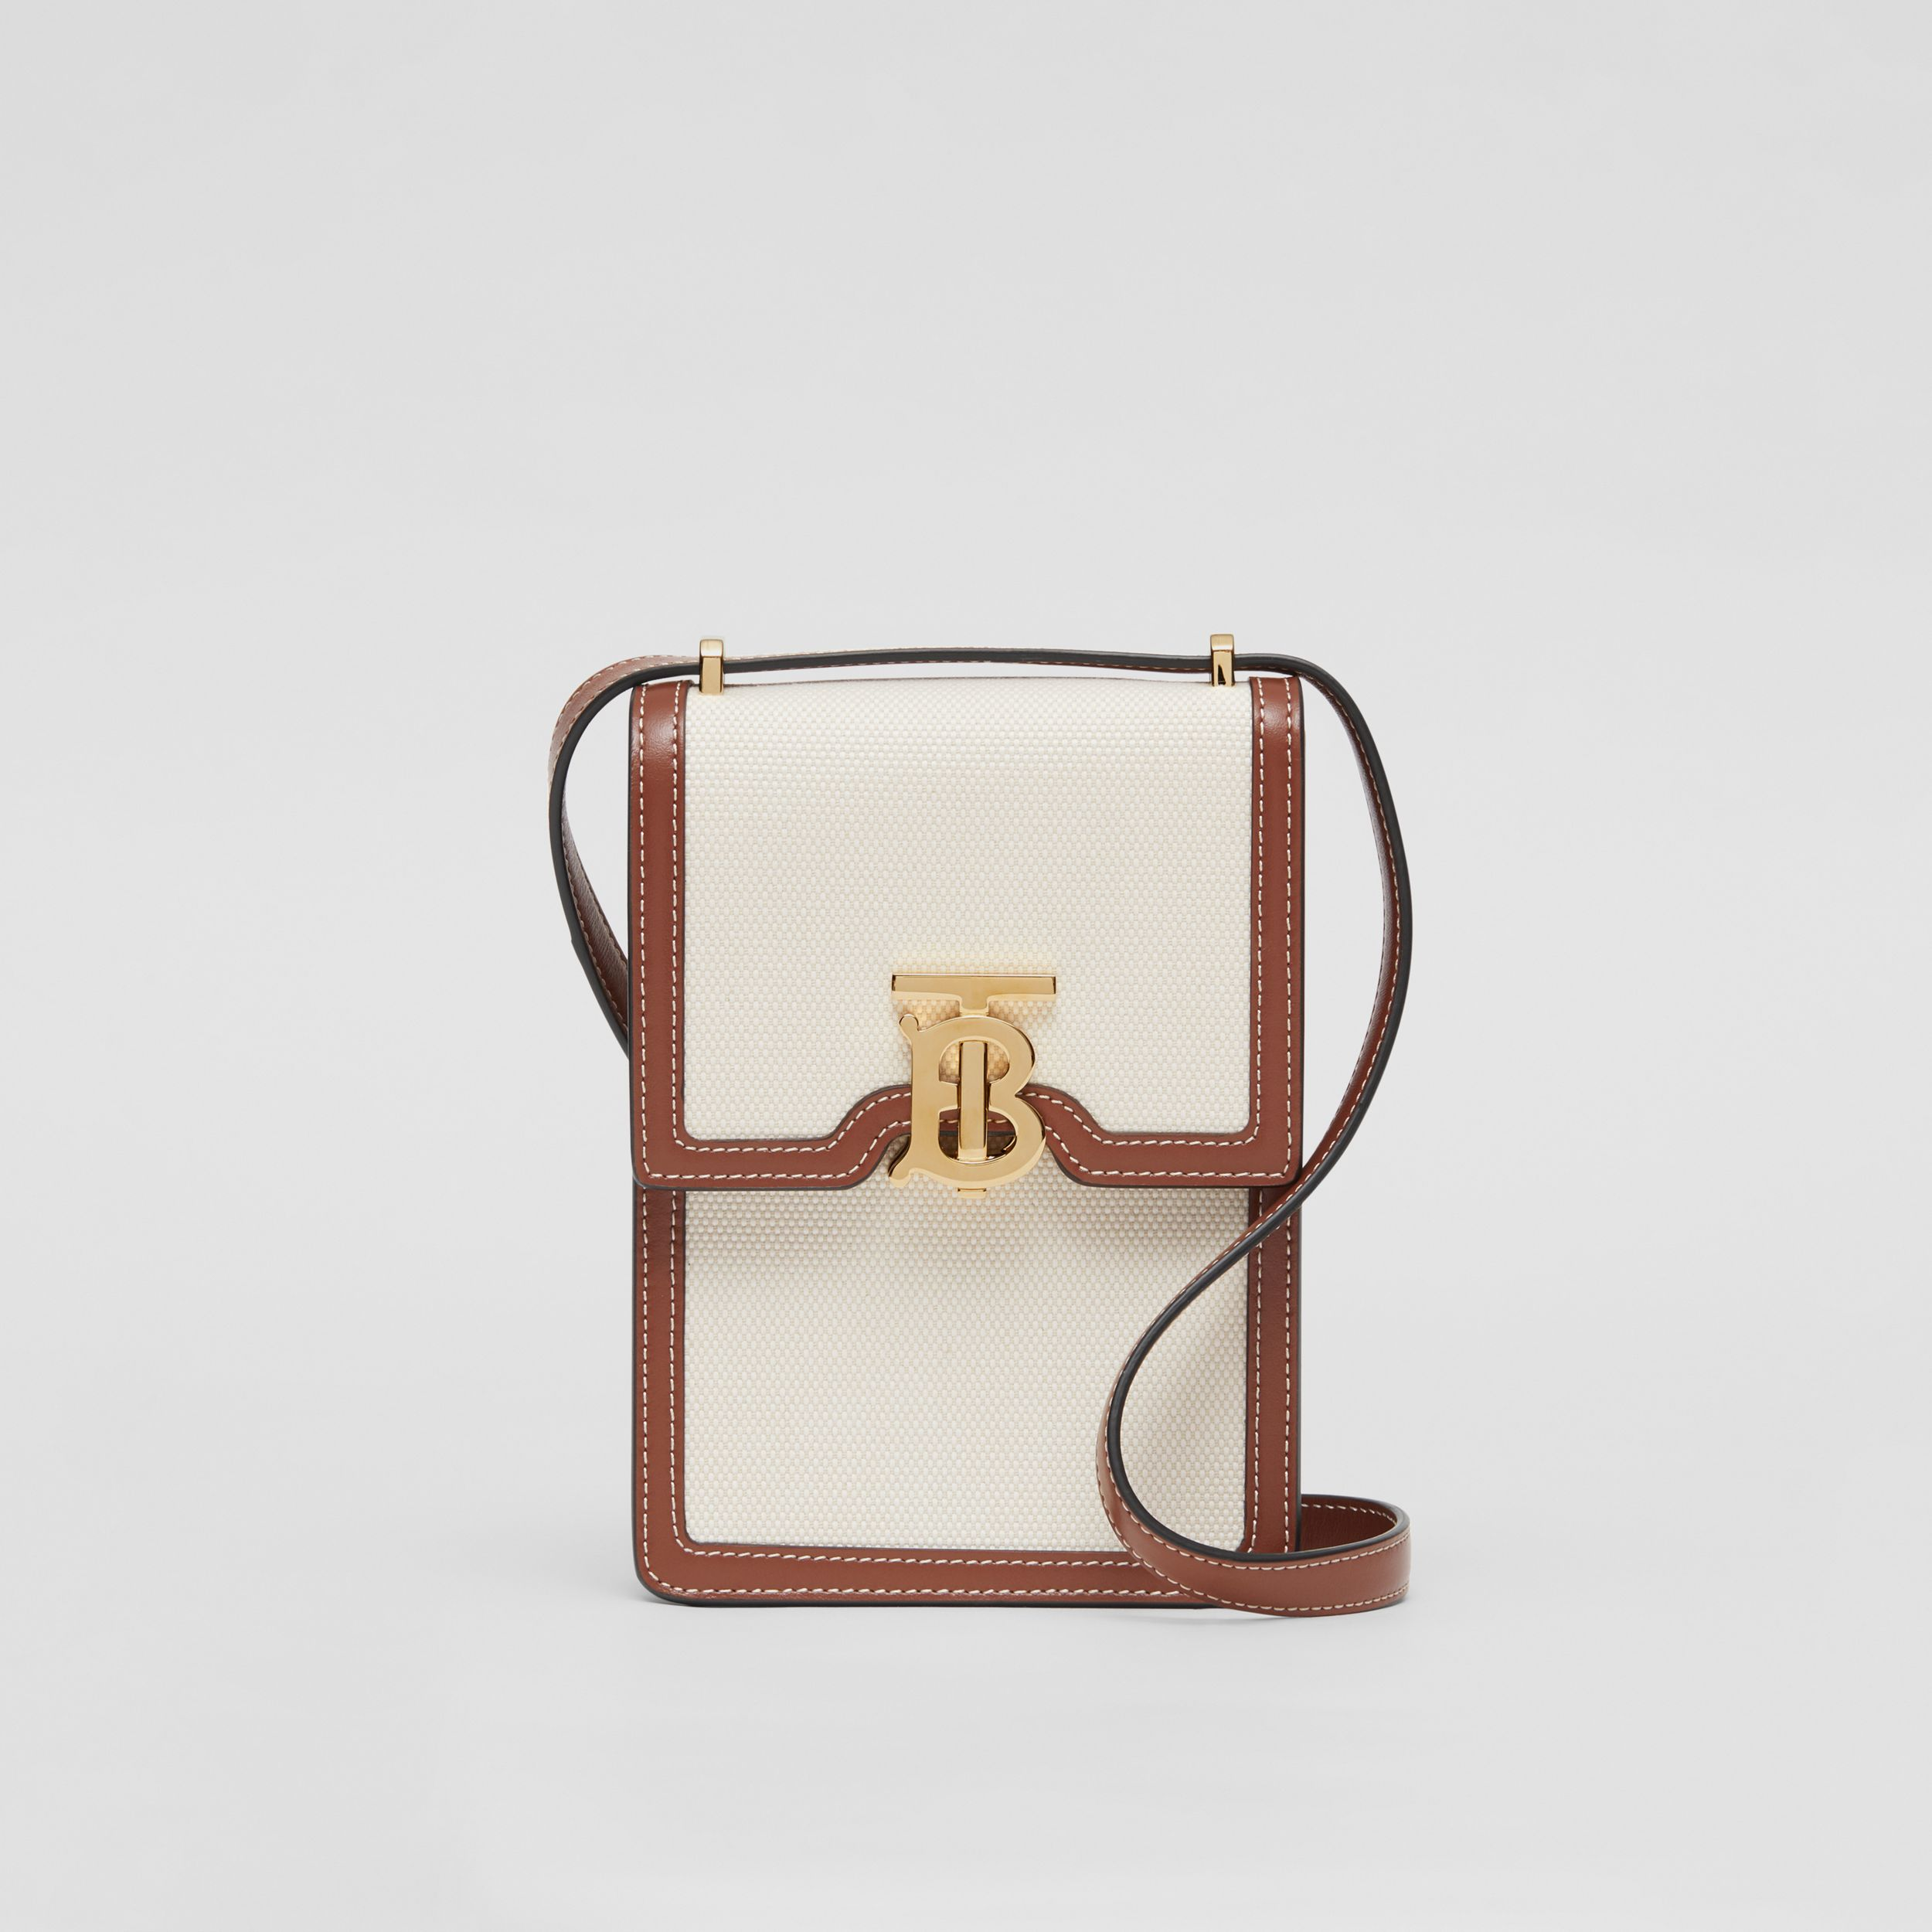 Cotton Canvas and Leather Robin Bag in White/tan - Women | Burberry Australia - 1